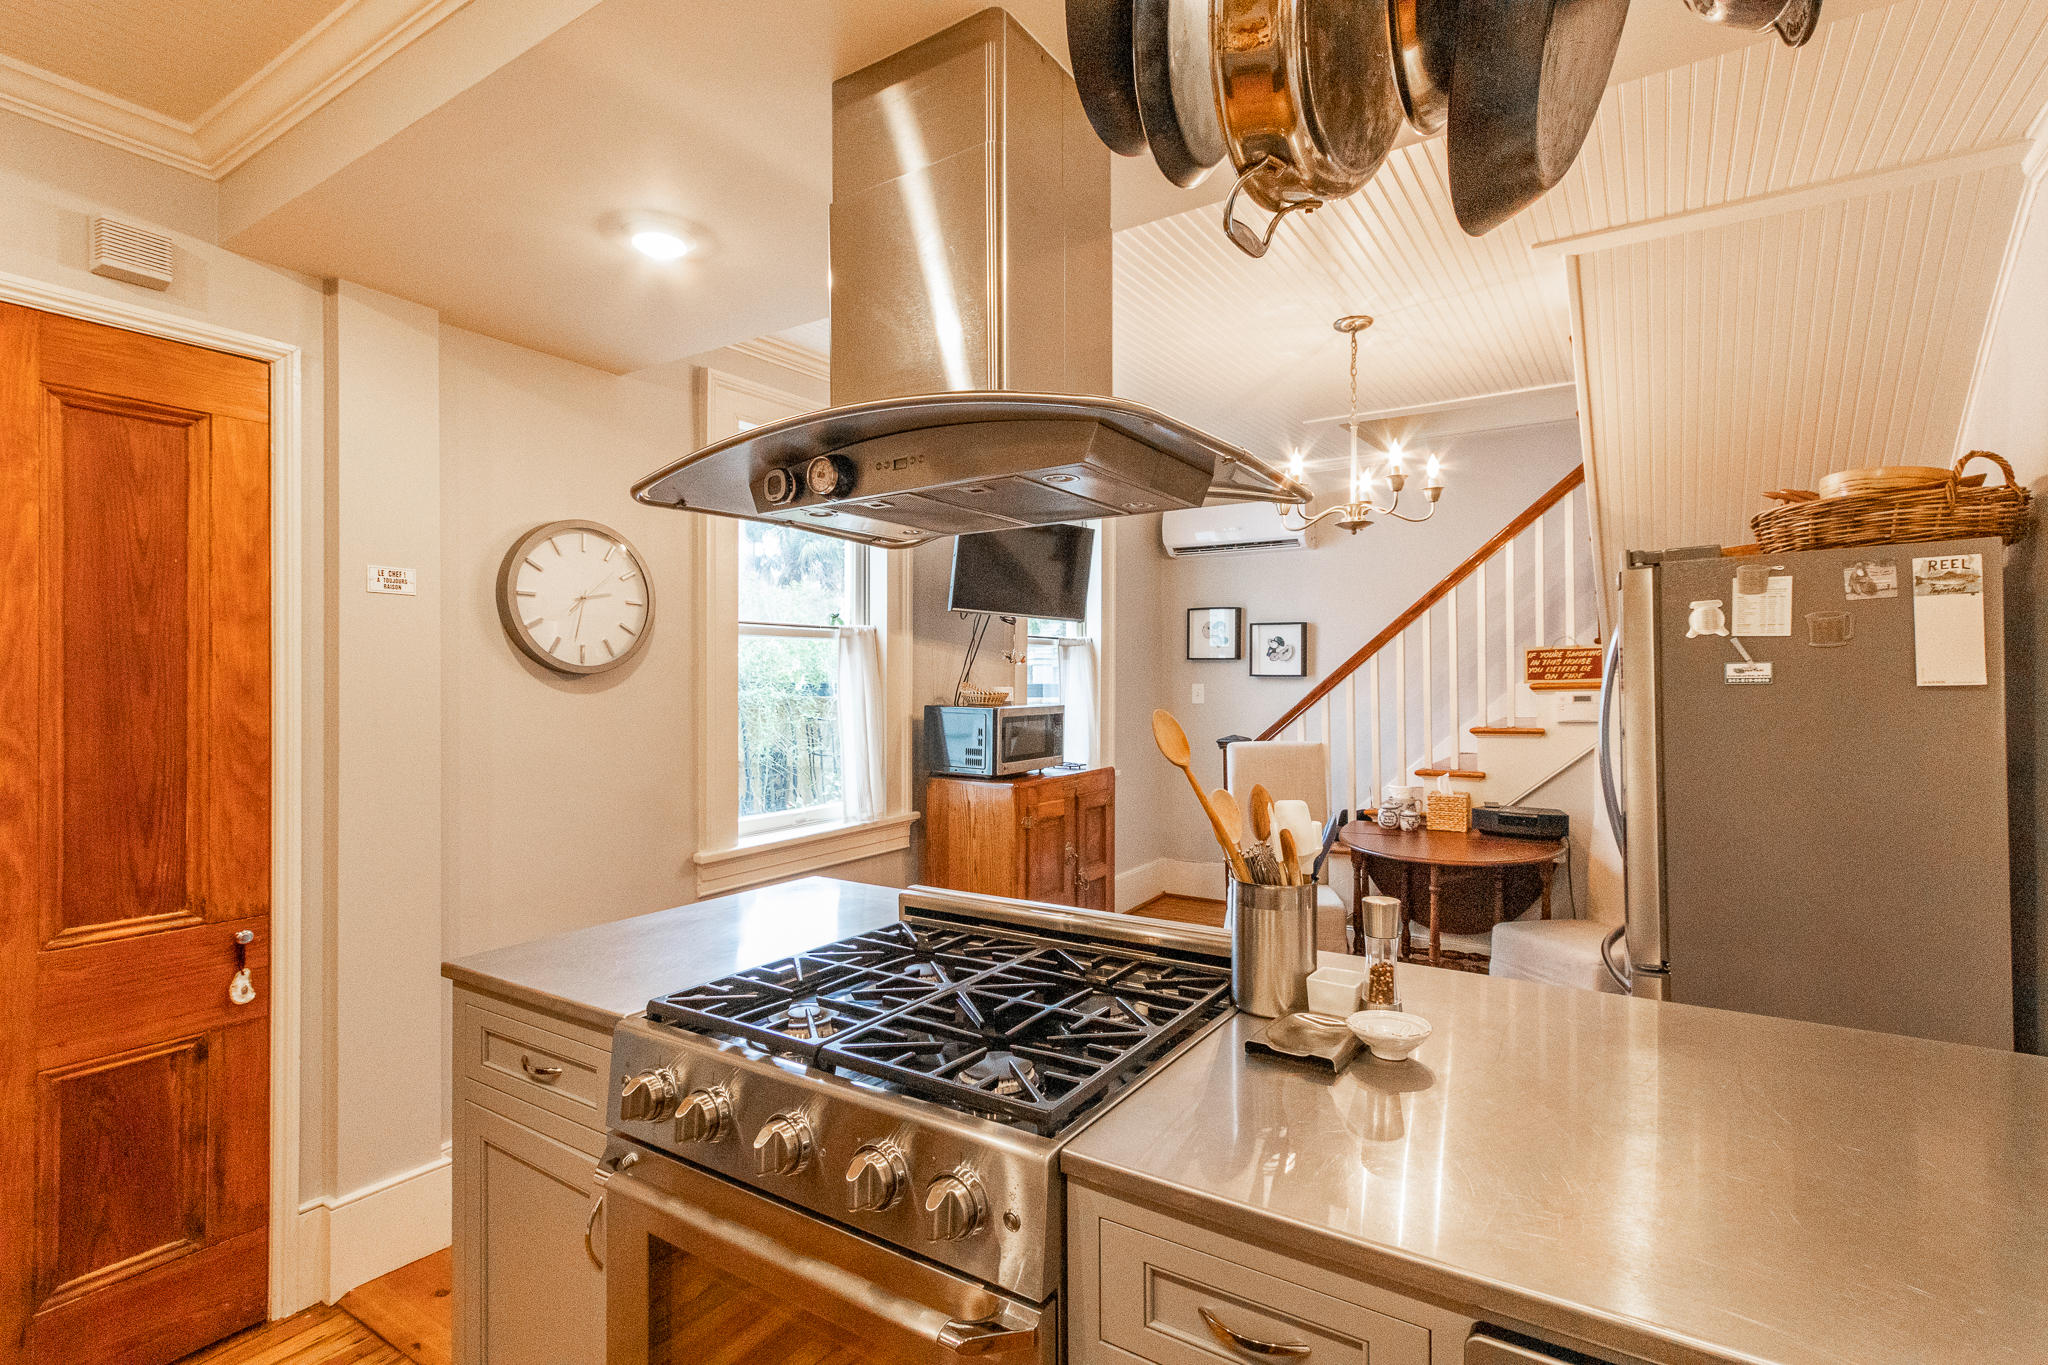 South of Broad Homes For Sale - 164 Tradd, Charleston, SC - 23